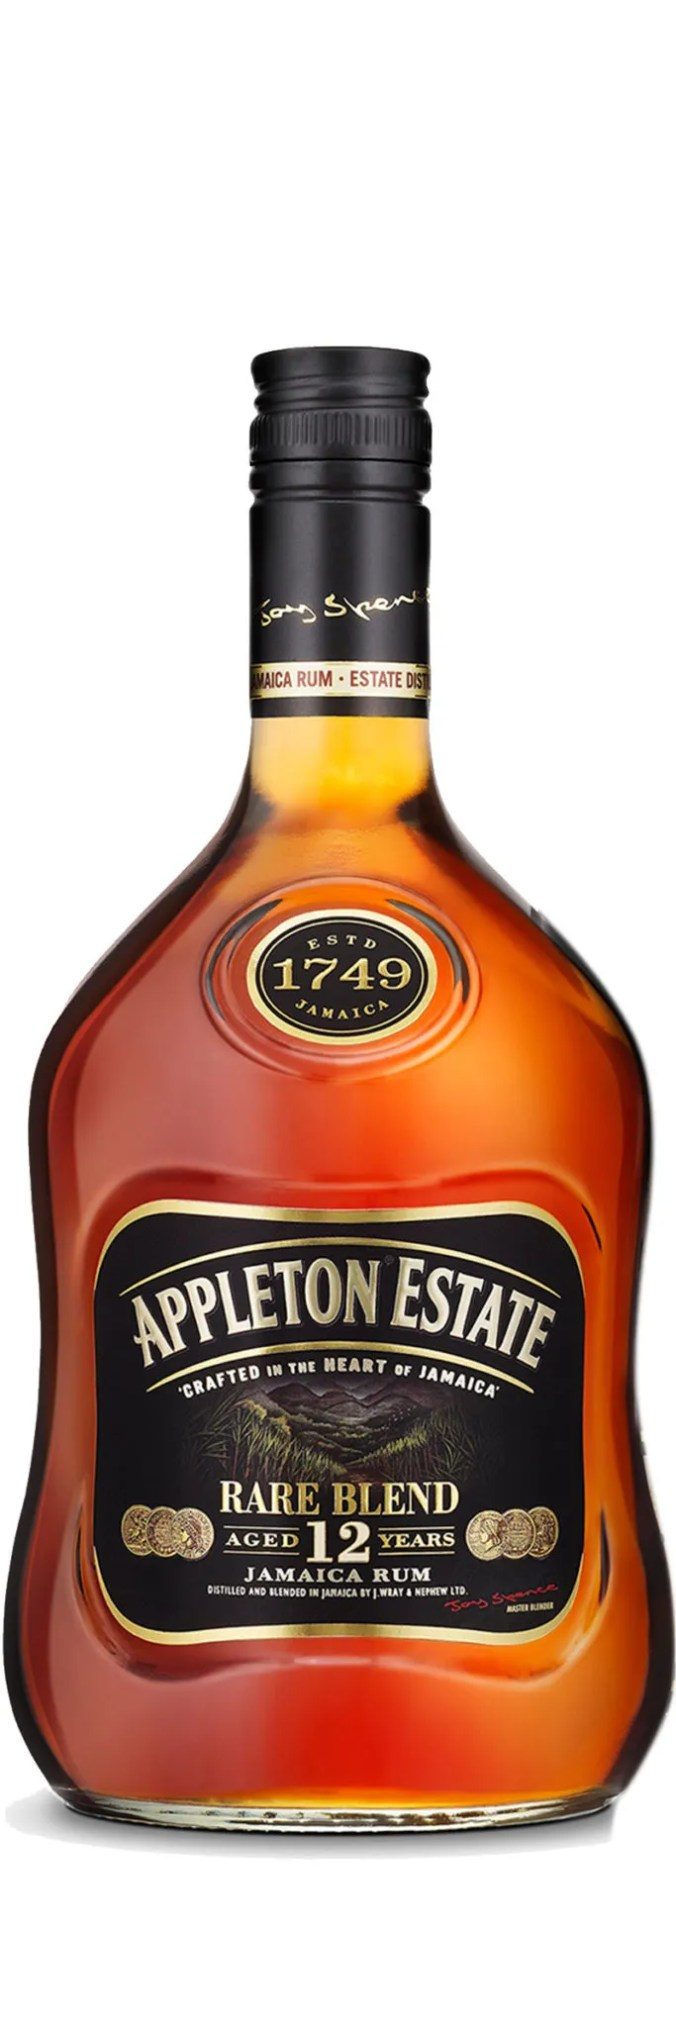 Appleton Estate Rare Blend 12 year old aged rum (formerly Extra) from Jamaica